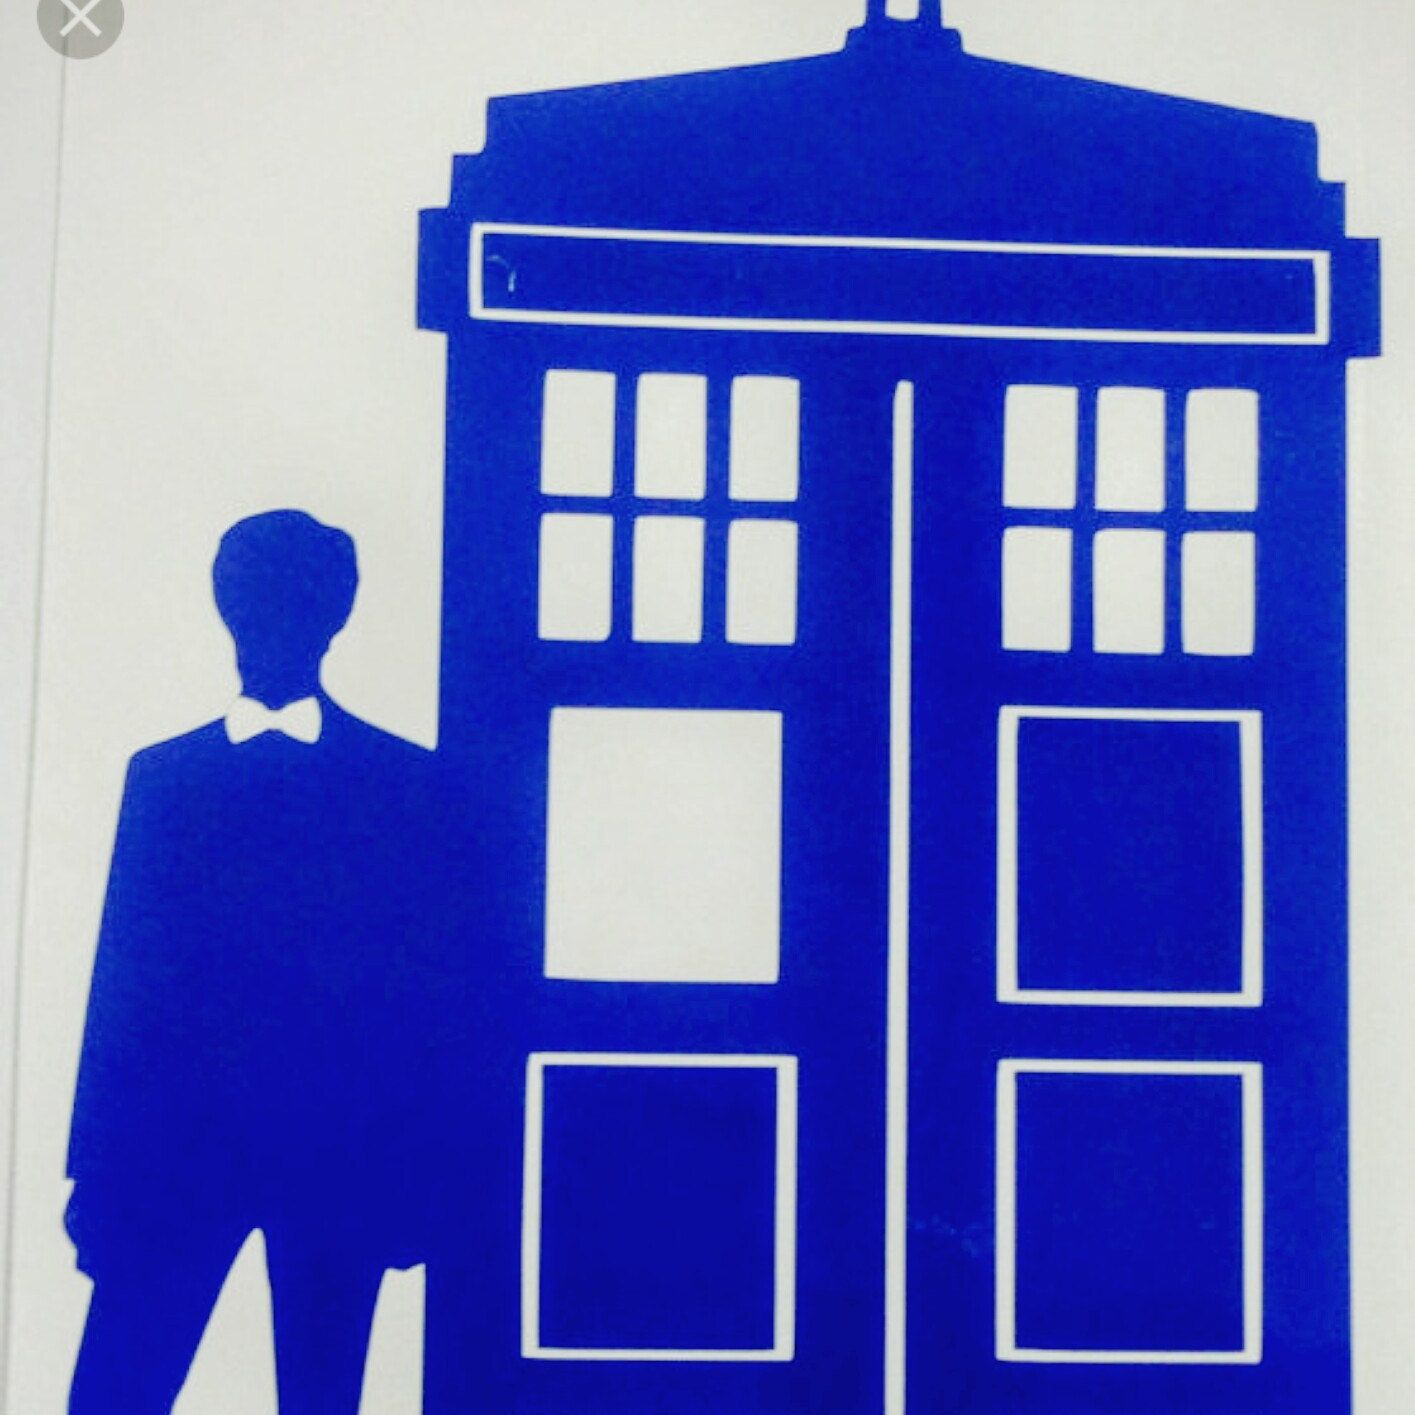 11th doctor matt smith and tardis decal for car tablet lap top 11th doctor matt smith and tardis decal for car tablet lap top wall multiple colors and sizes amipublicfo Choice Image